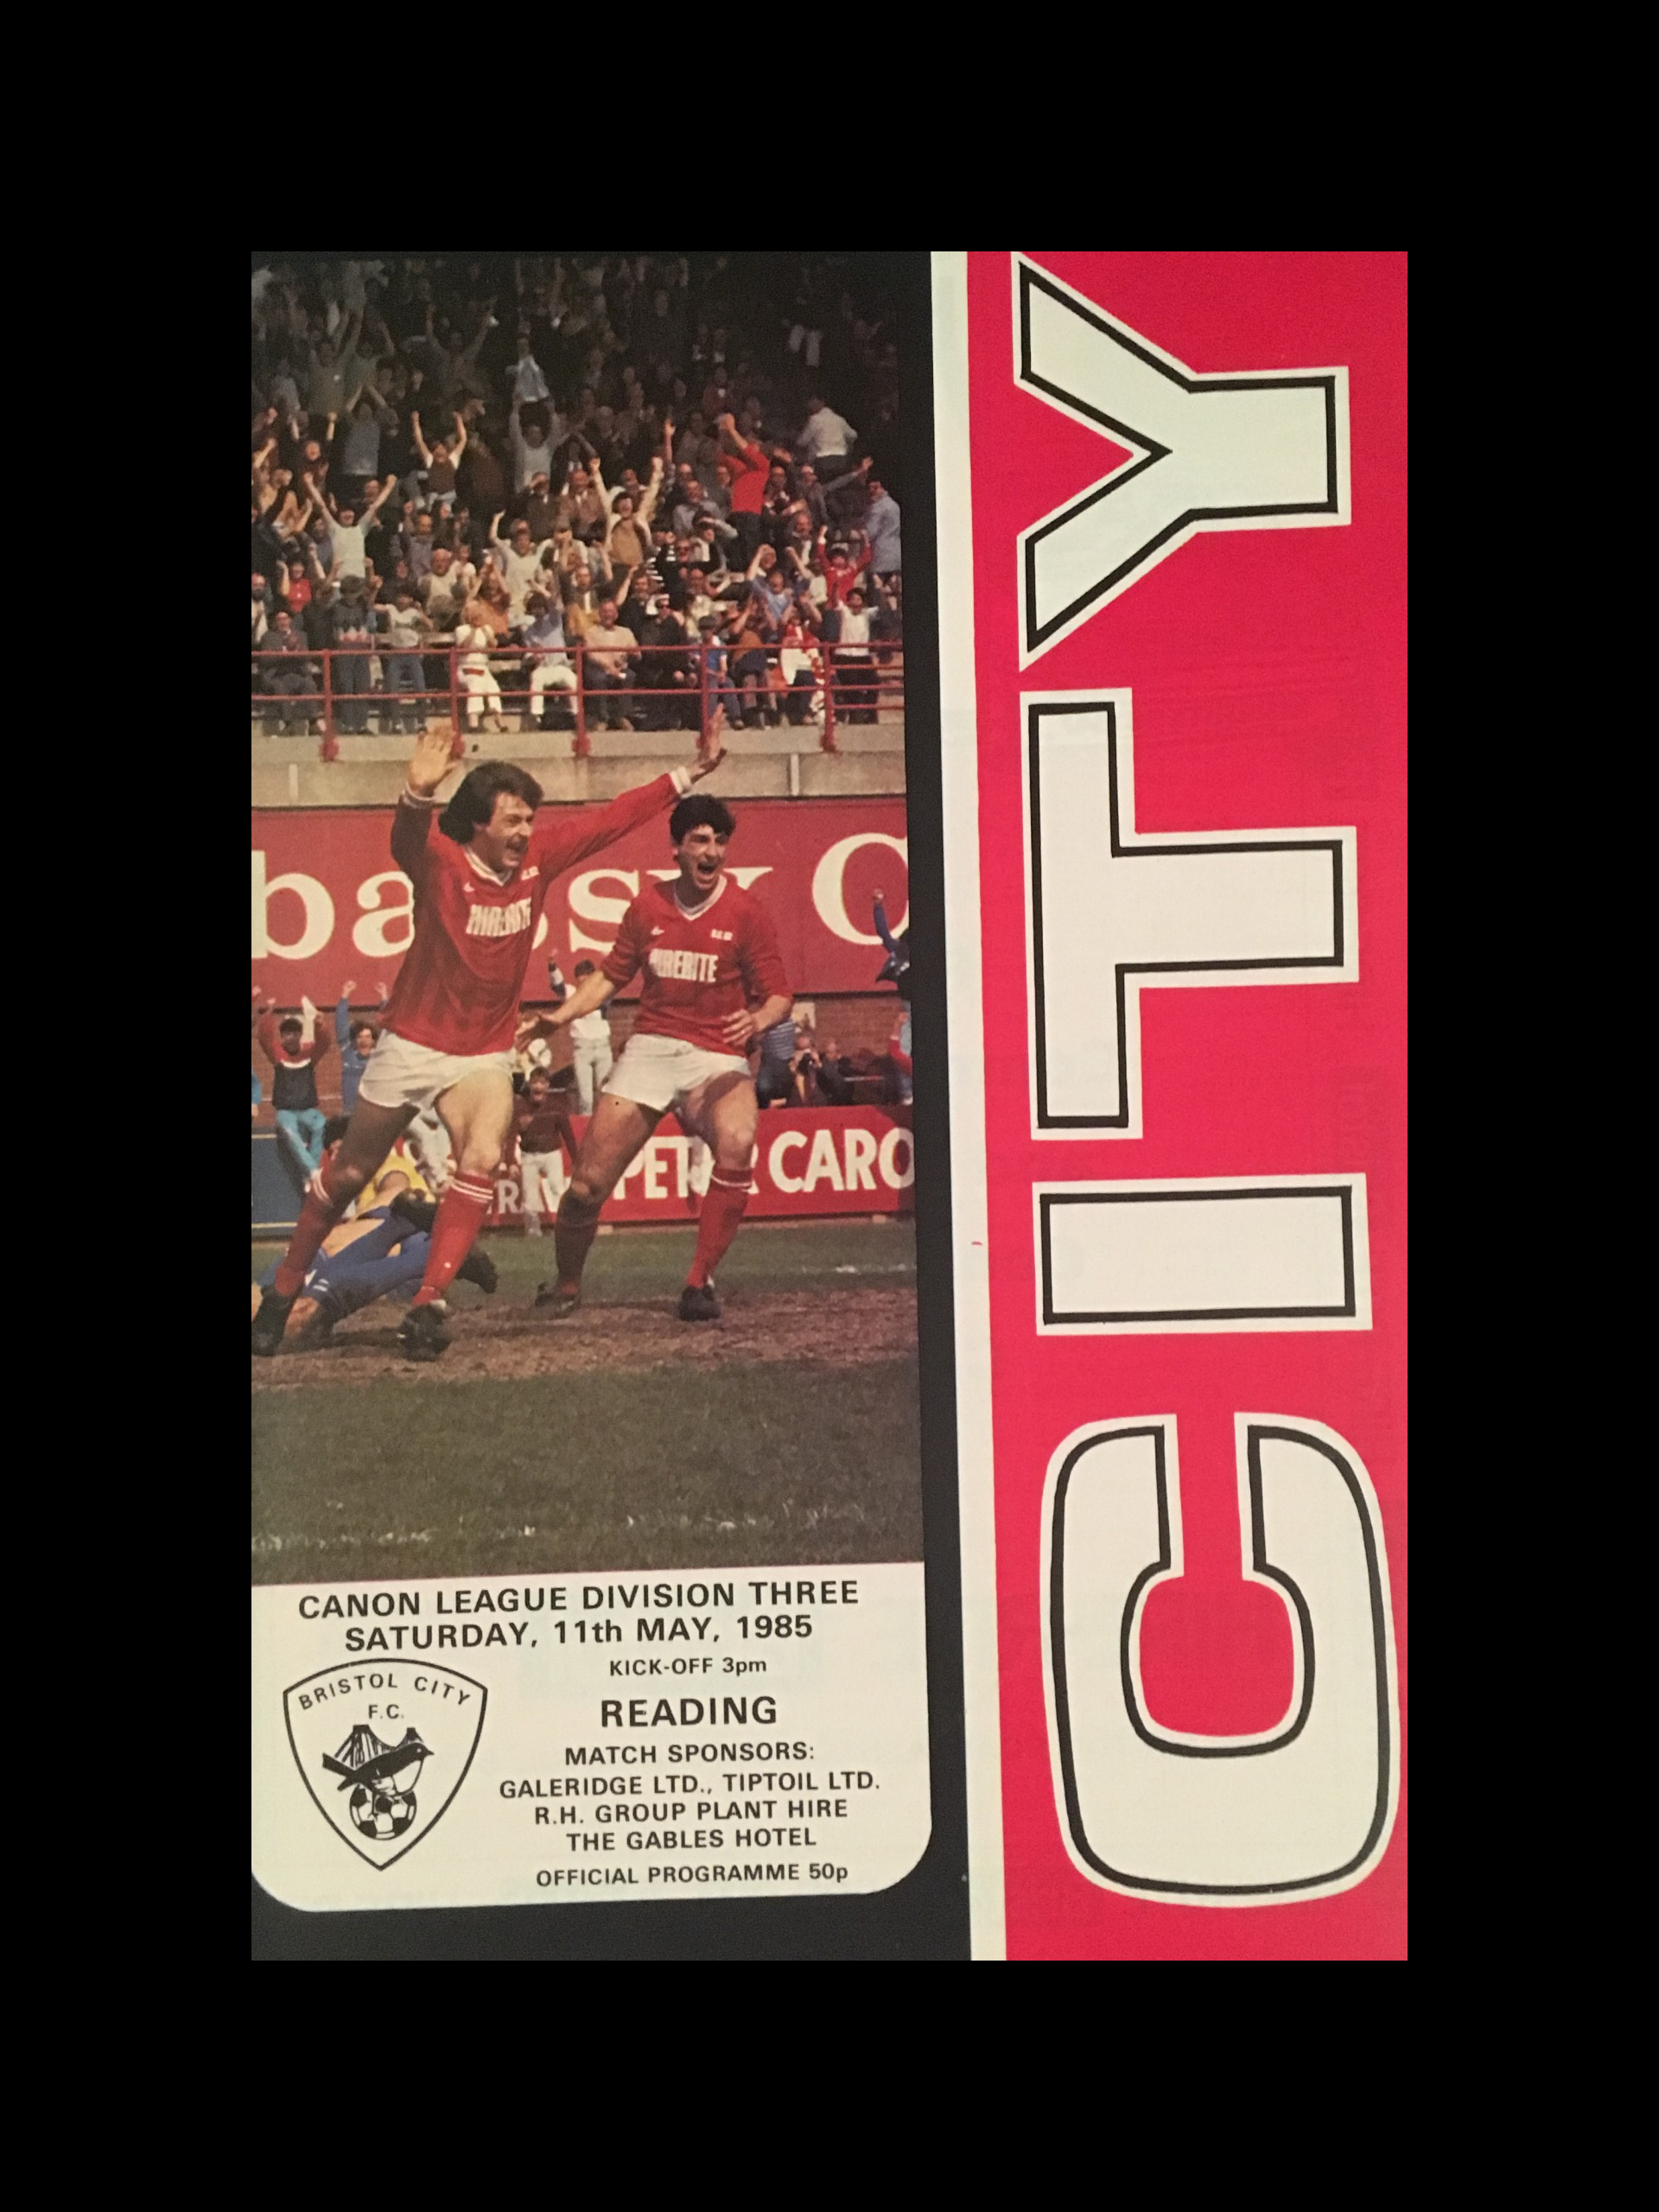 Bristol City v Reading 11-05-85 Programme